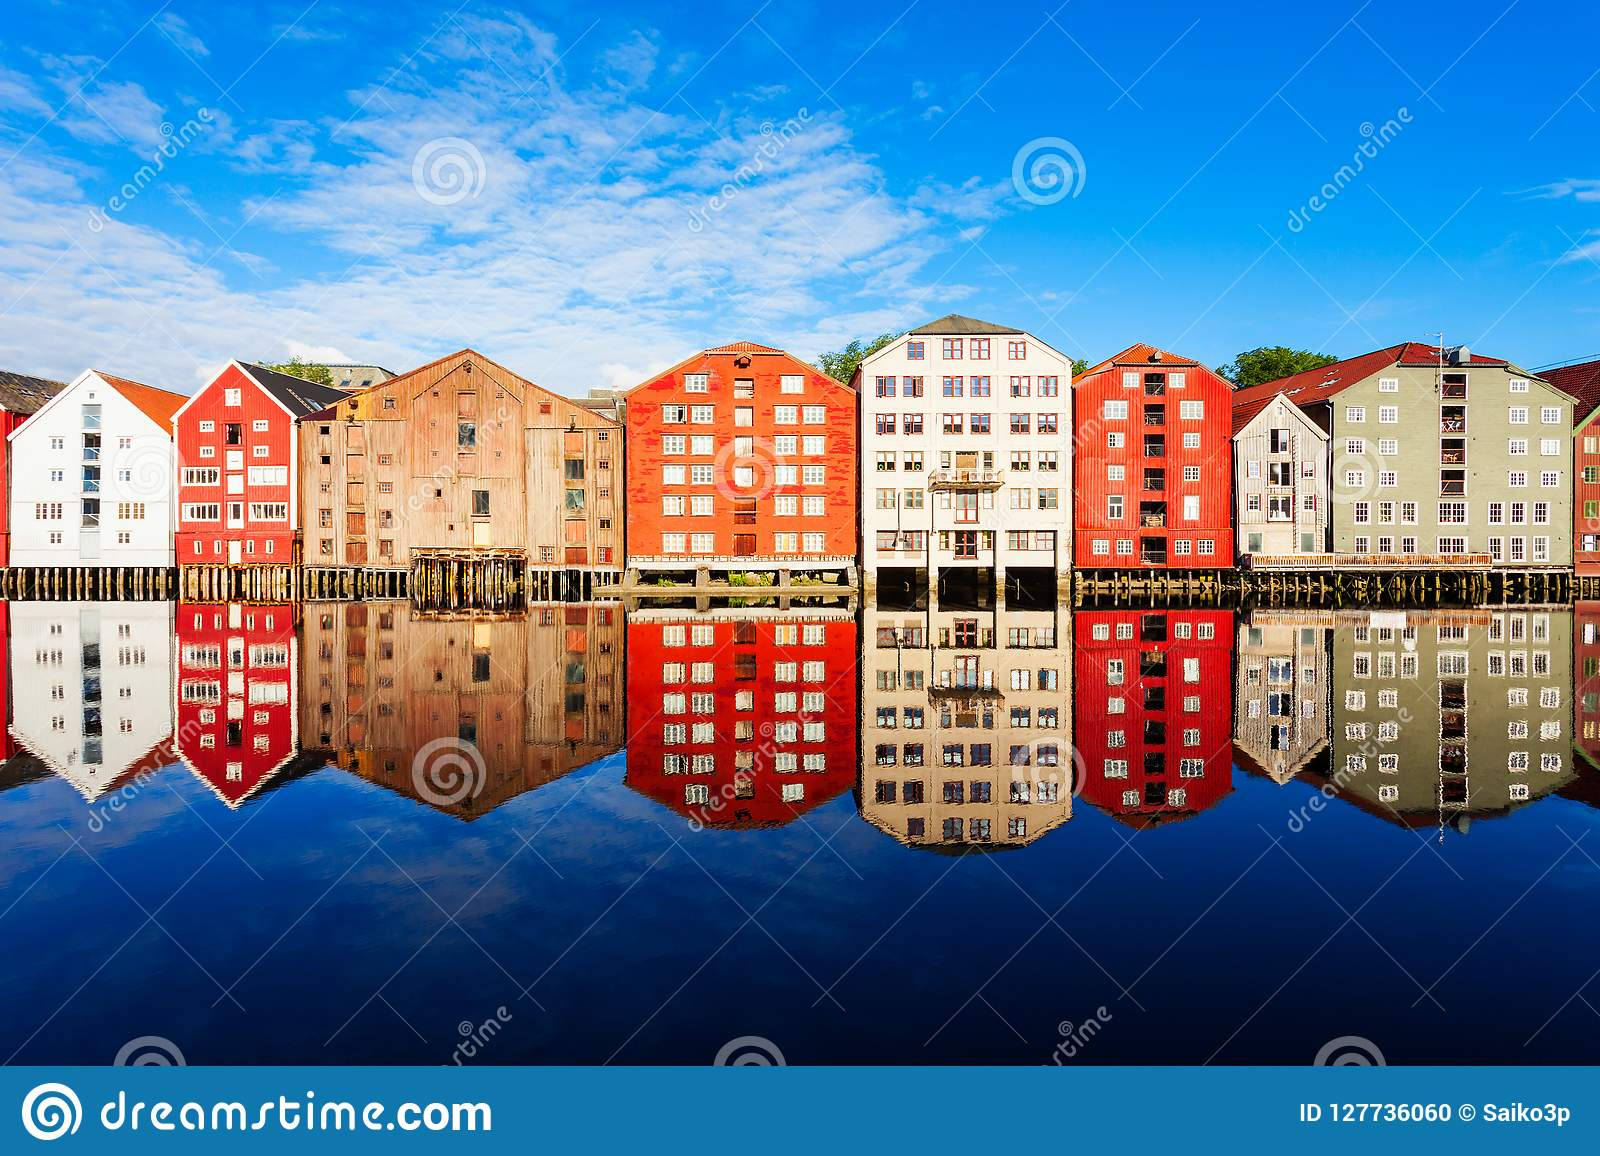 Old houses in Trondheim